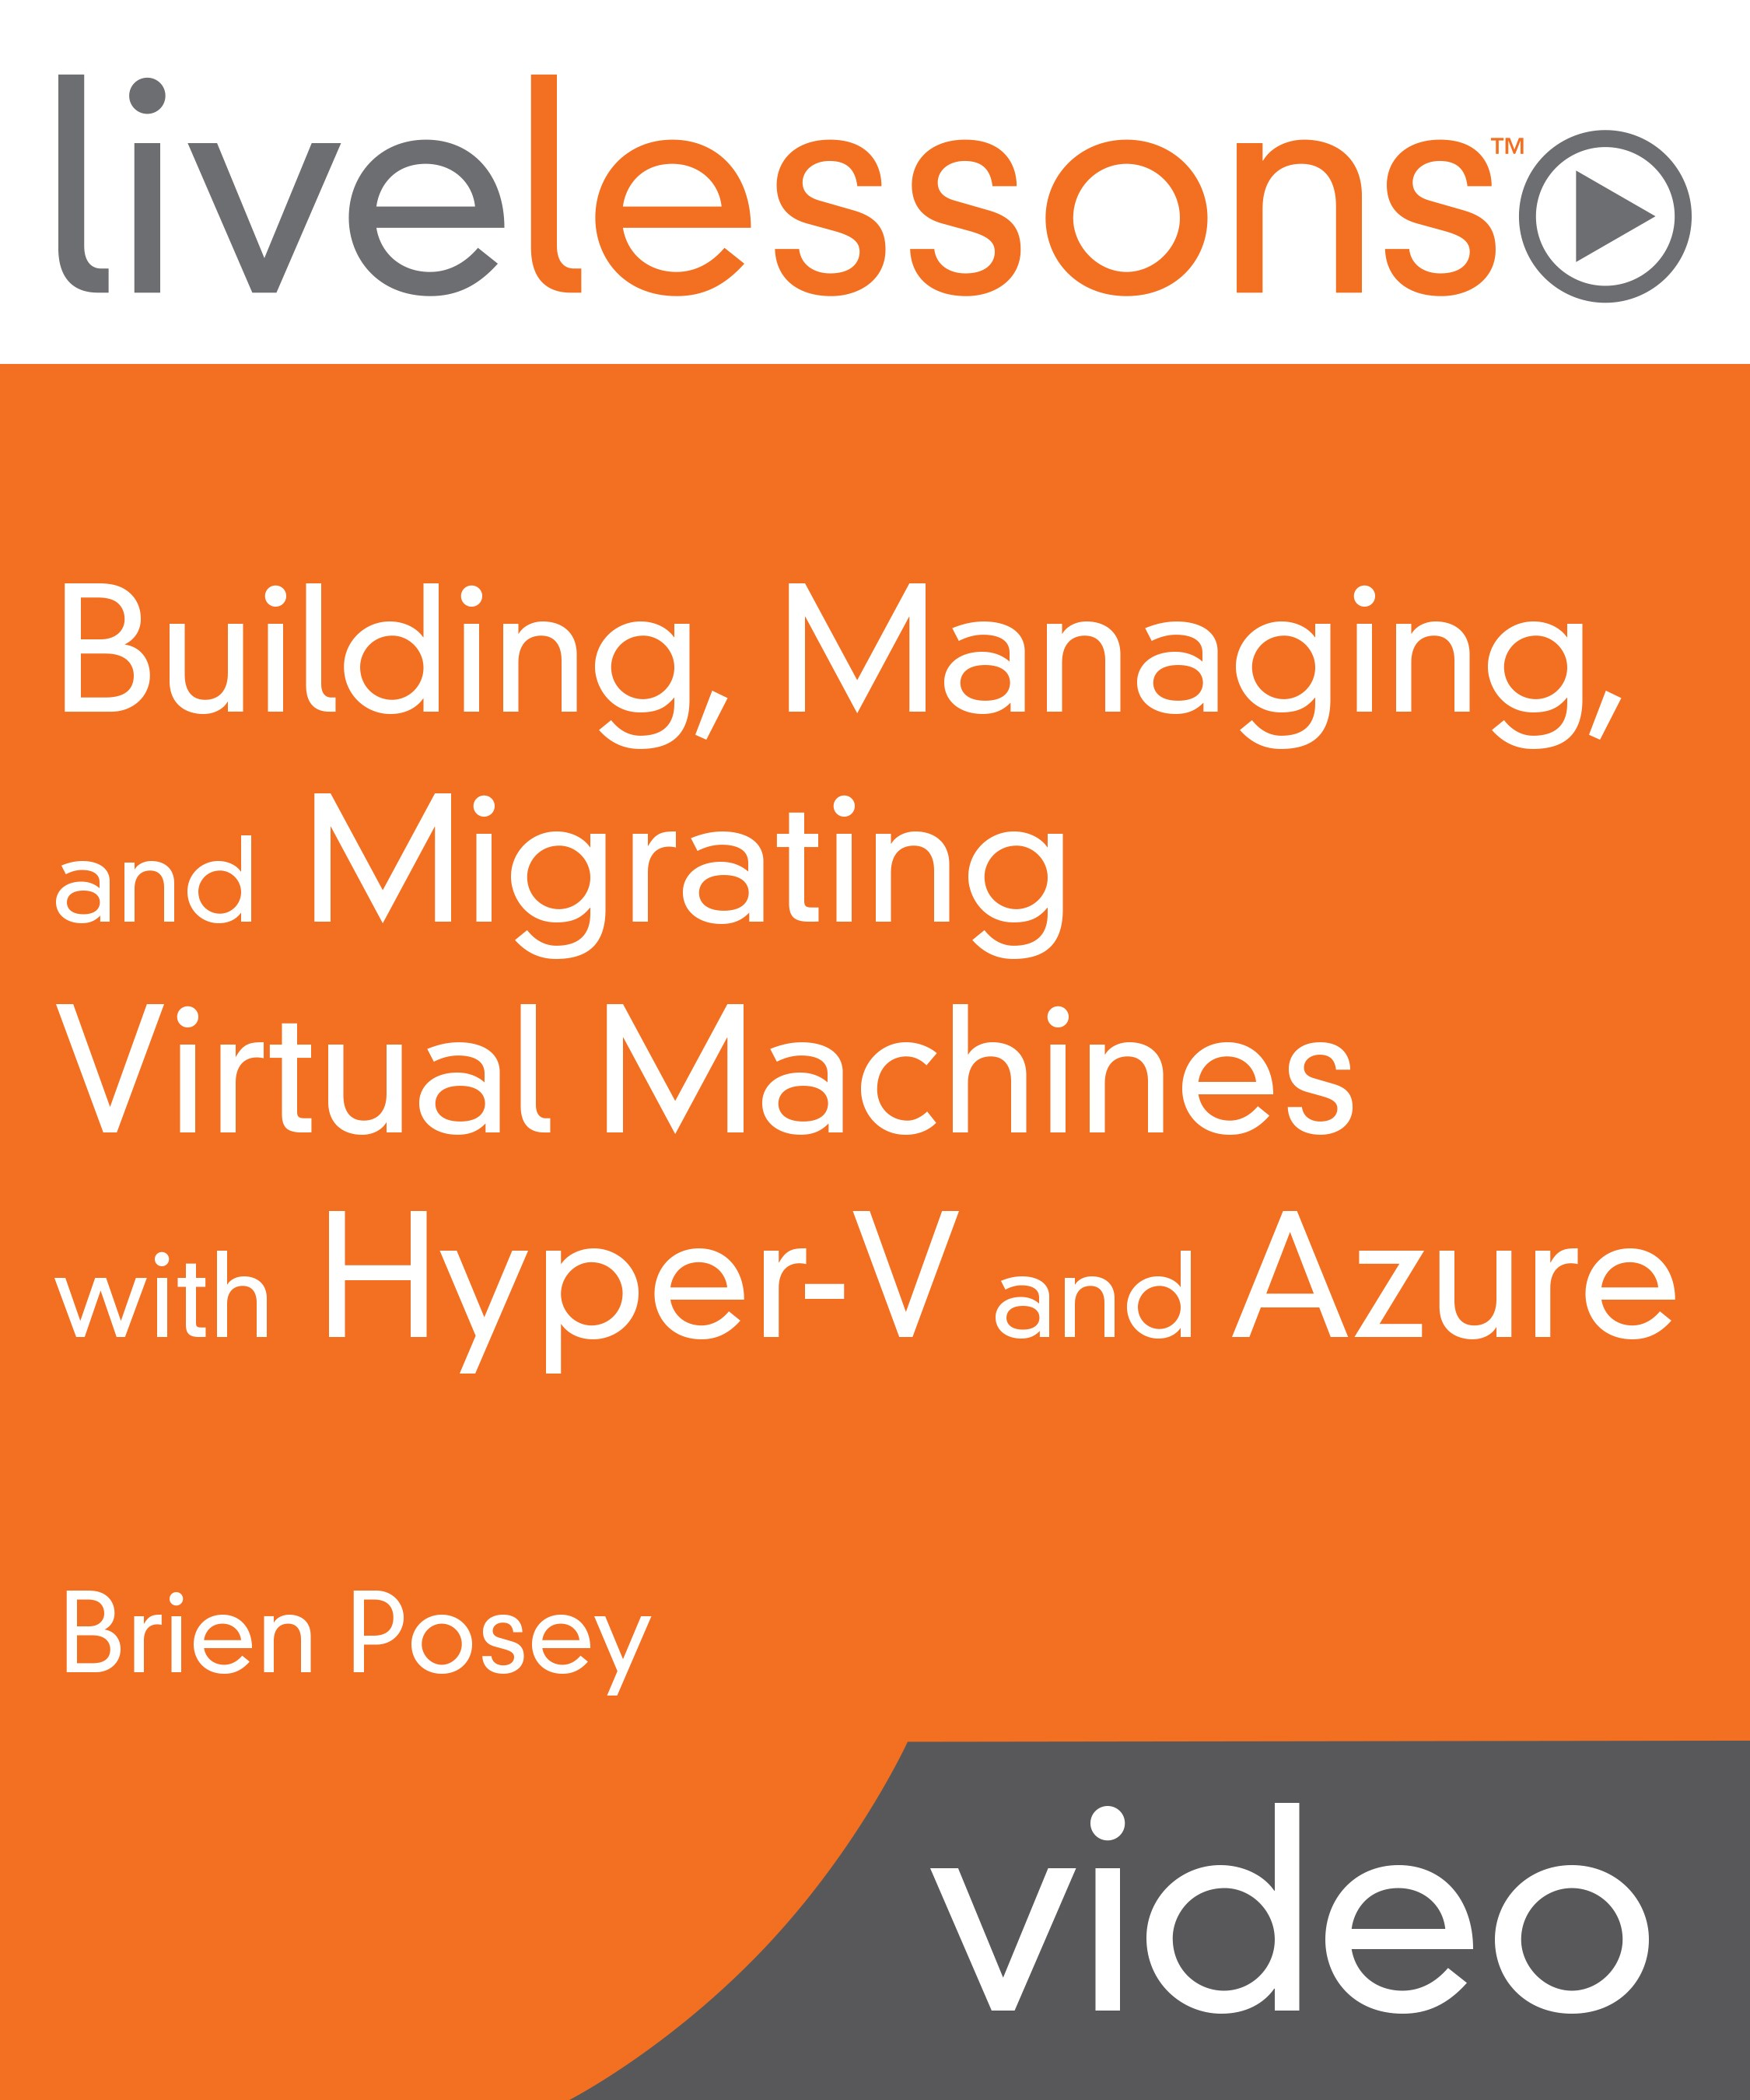 Building, Managing, and Migrating Virtual Machines with Hyper-V and Azure LiveLessons (Video Training)